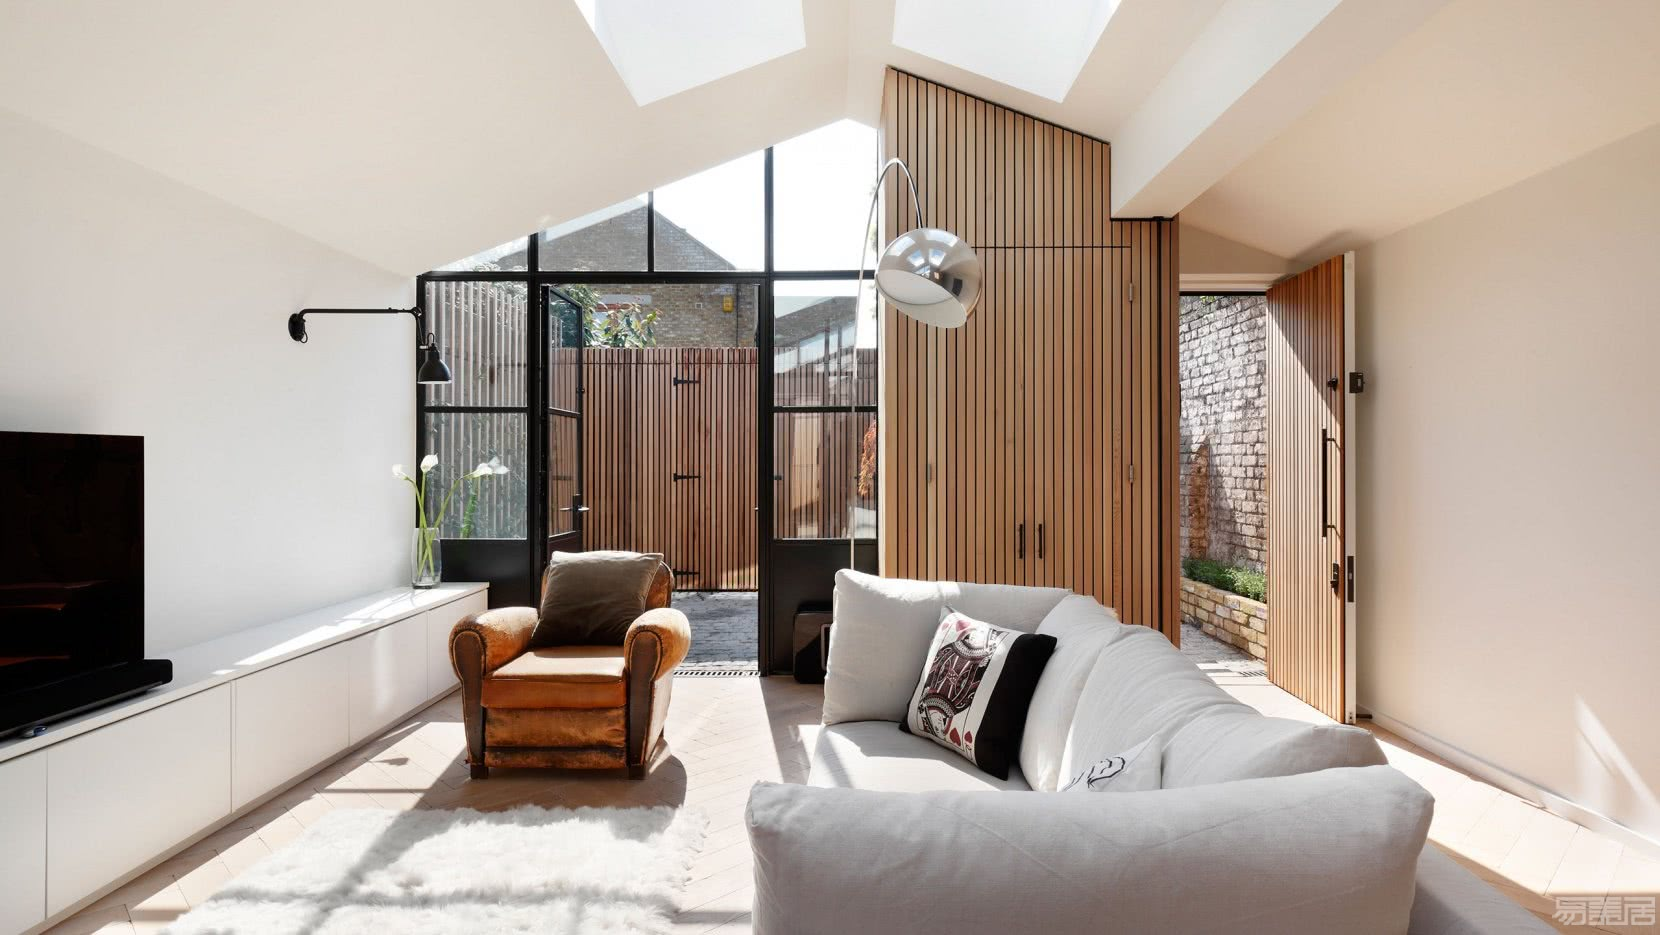 p2_courtyard_house_london_de_rosee_sa_yatzer.jpg